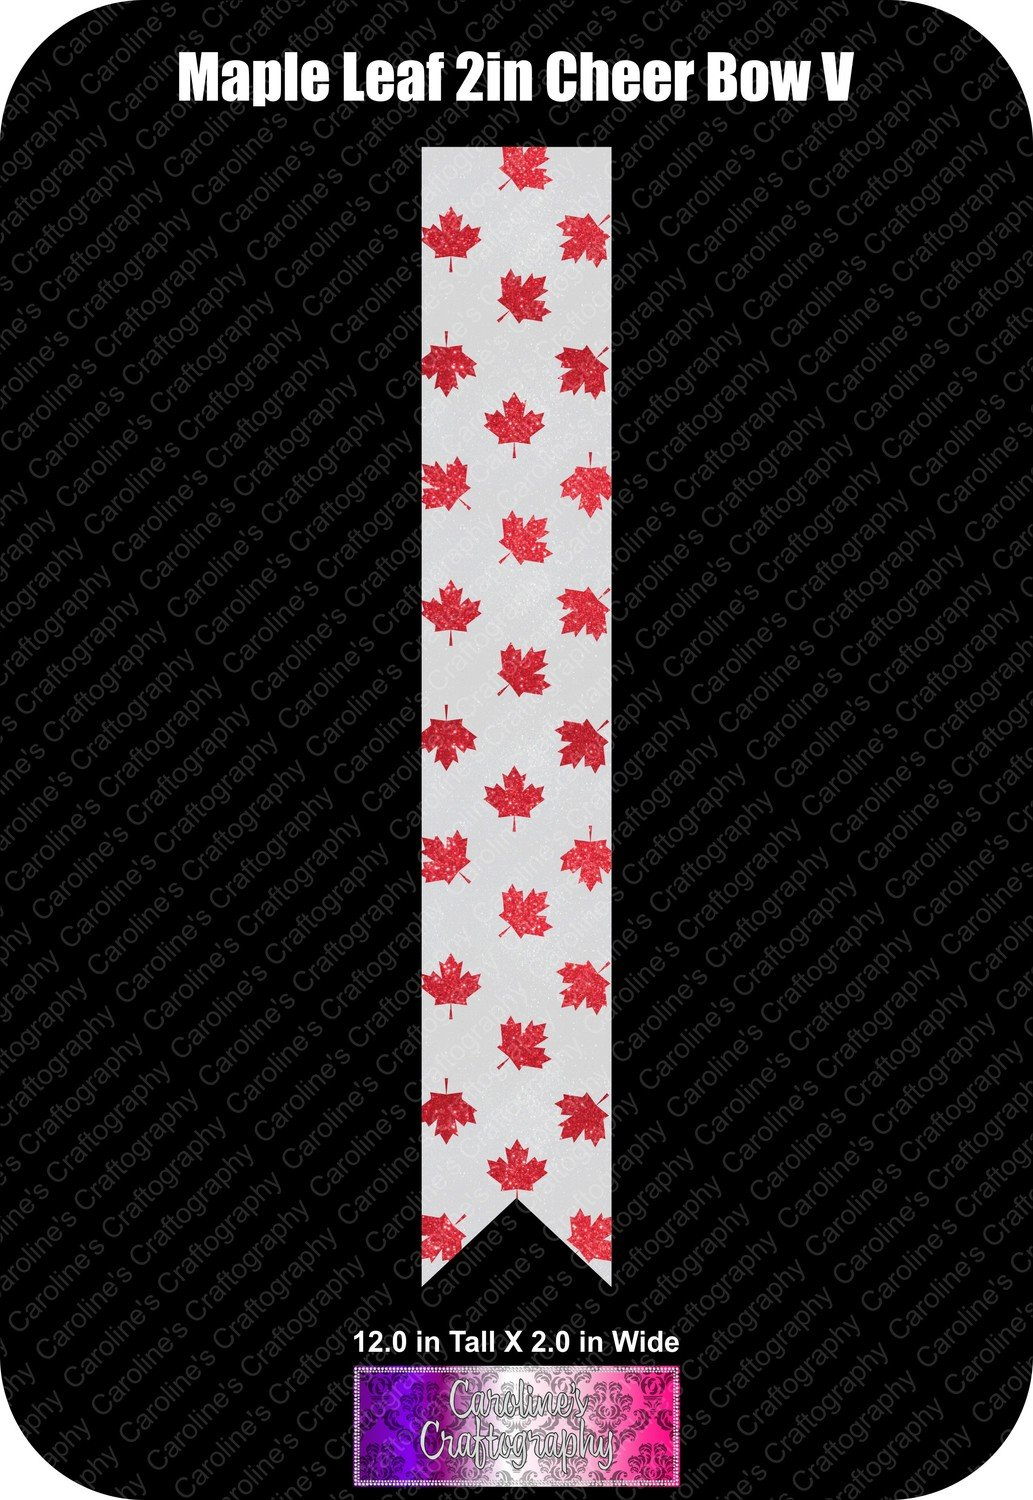 Maple Leaf 2in Cheer Bow Vinyl